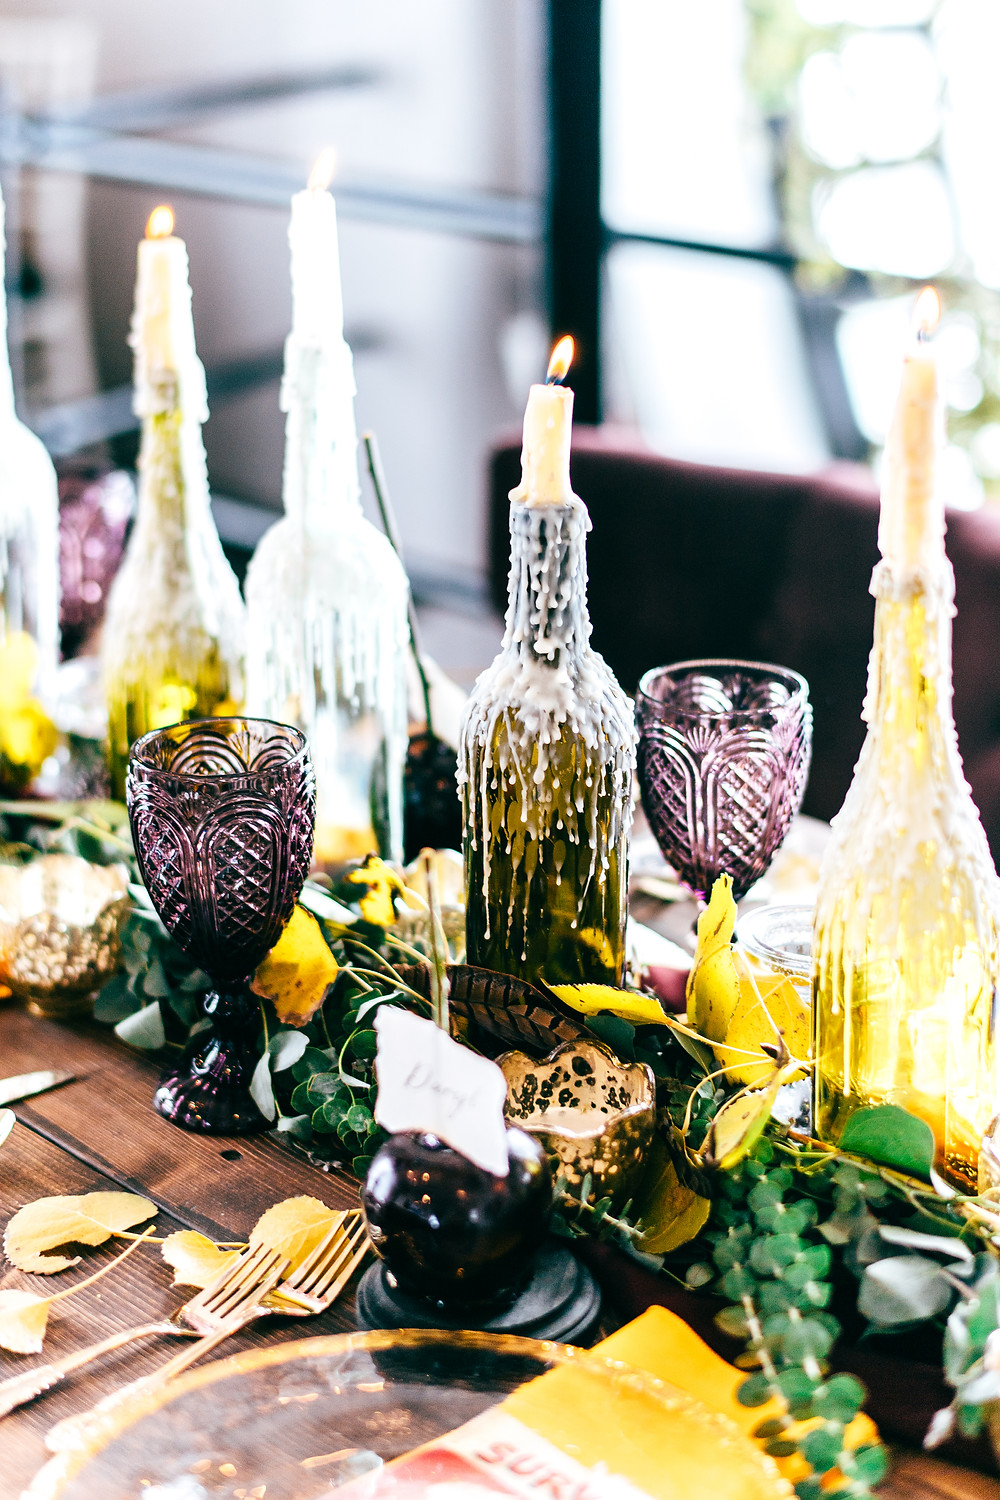 Dark & Moody Post-Apocalyptic Wedding Tablescape with Maroons, Plums, and Gold